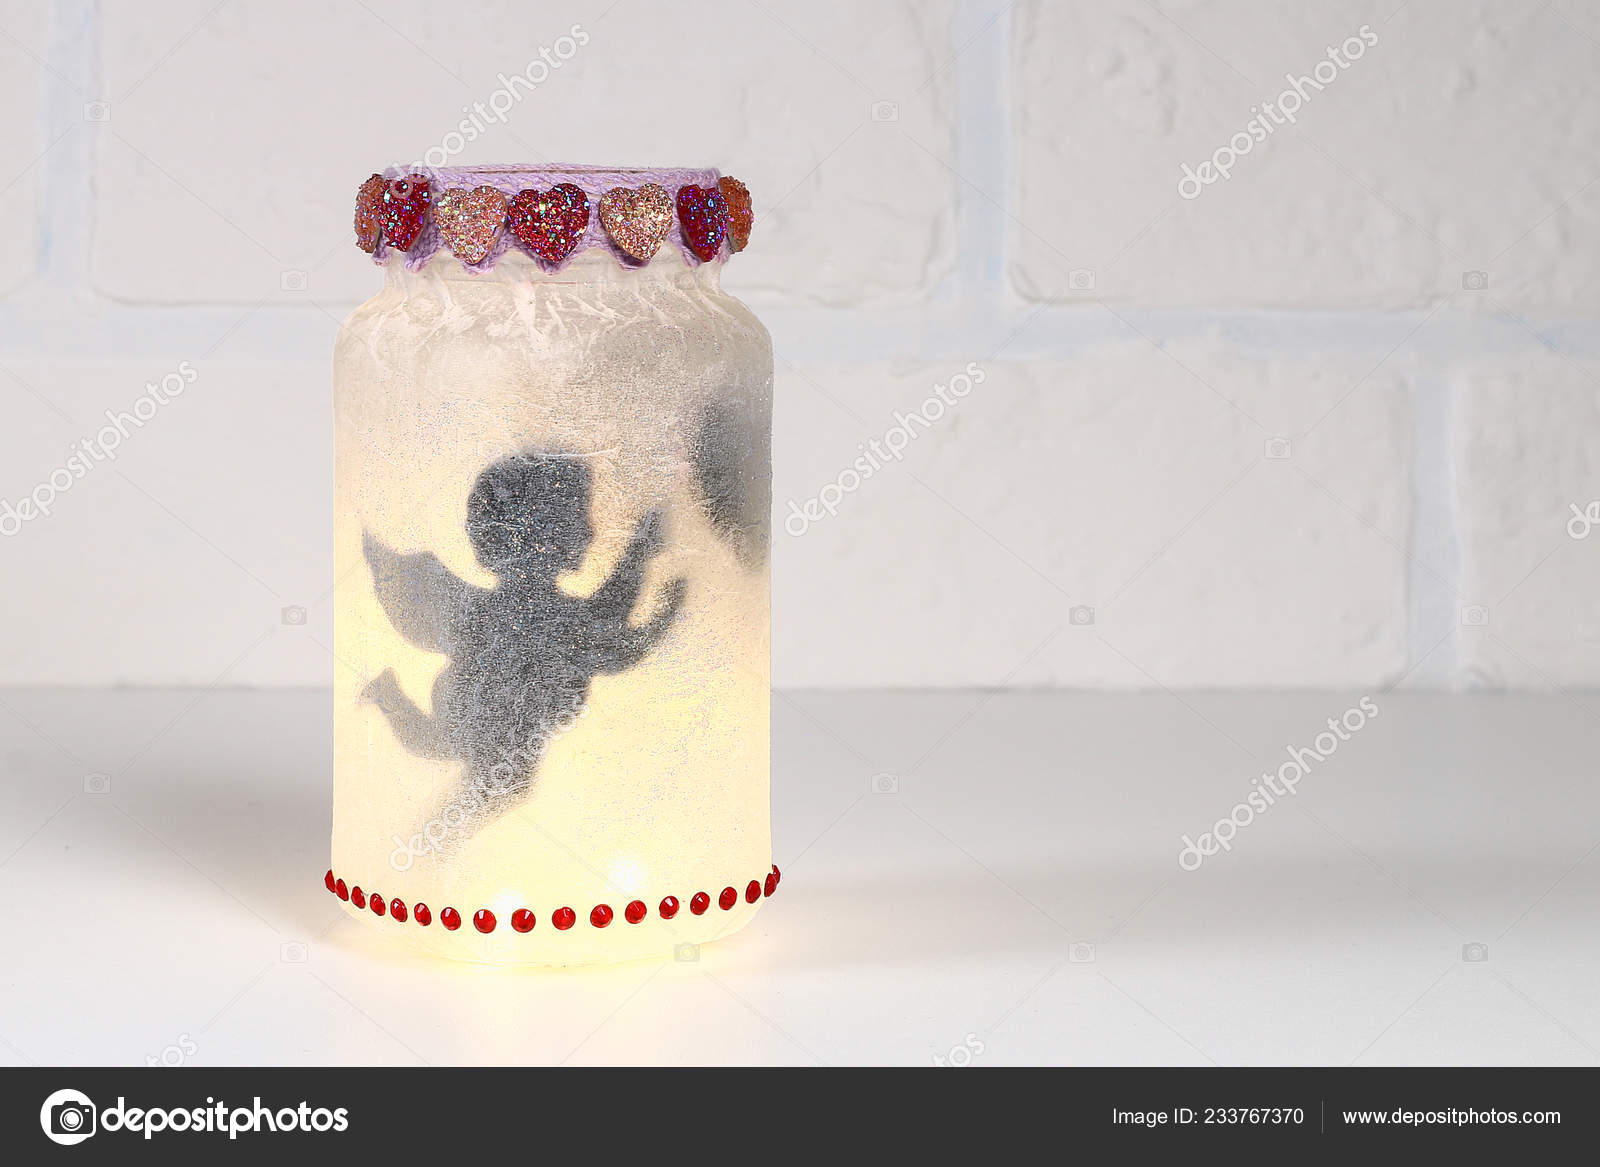 Diy Fairy Jar White Brick Wall Background Gift Ideas Decor Stock Photo C Detry Yandex Ru 233767370